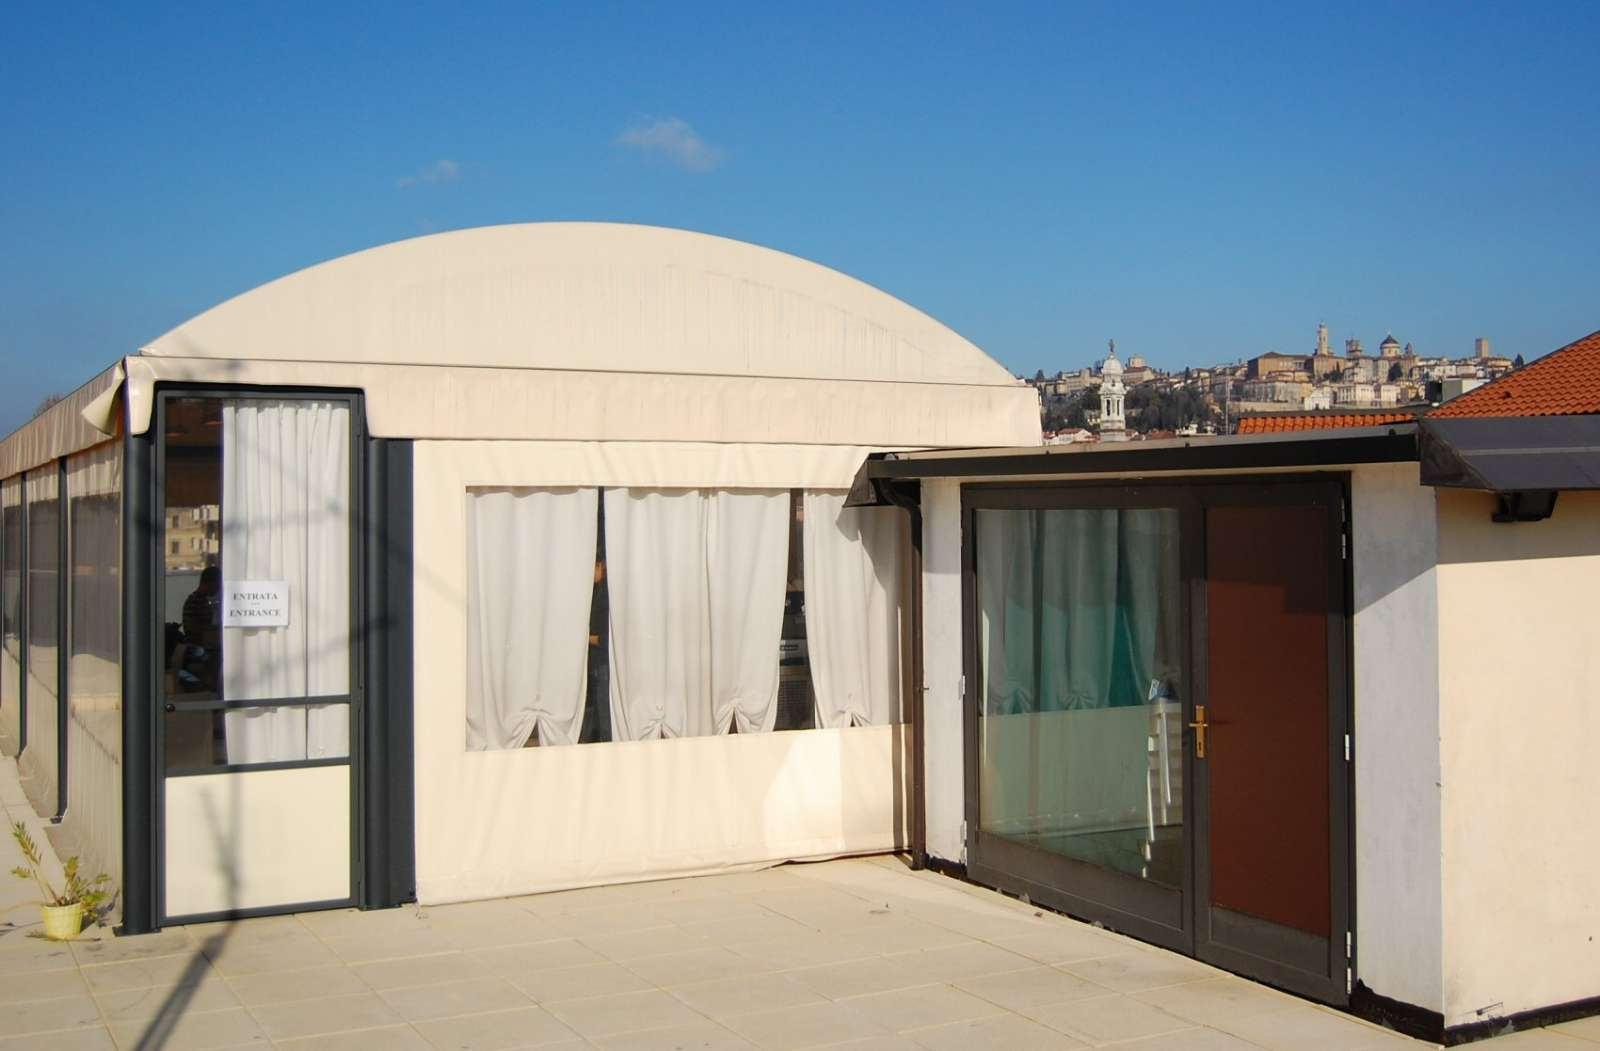 The breakfast room is located on the roof terrace